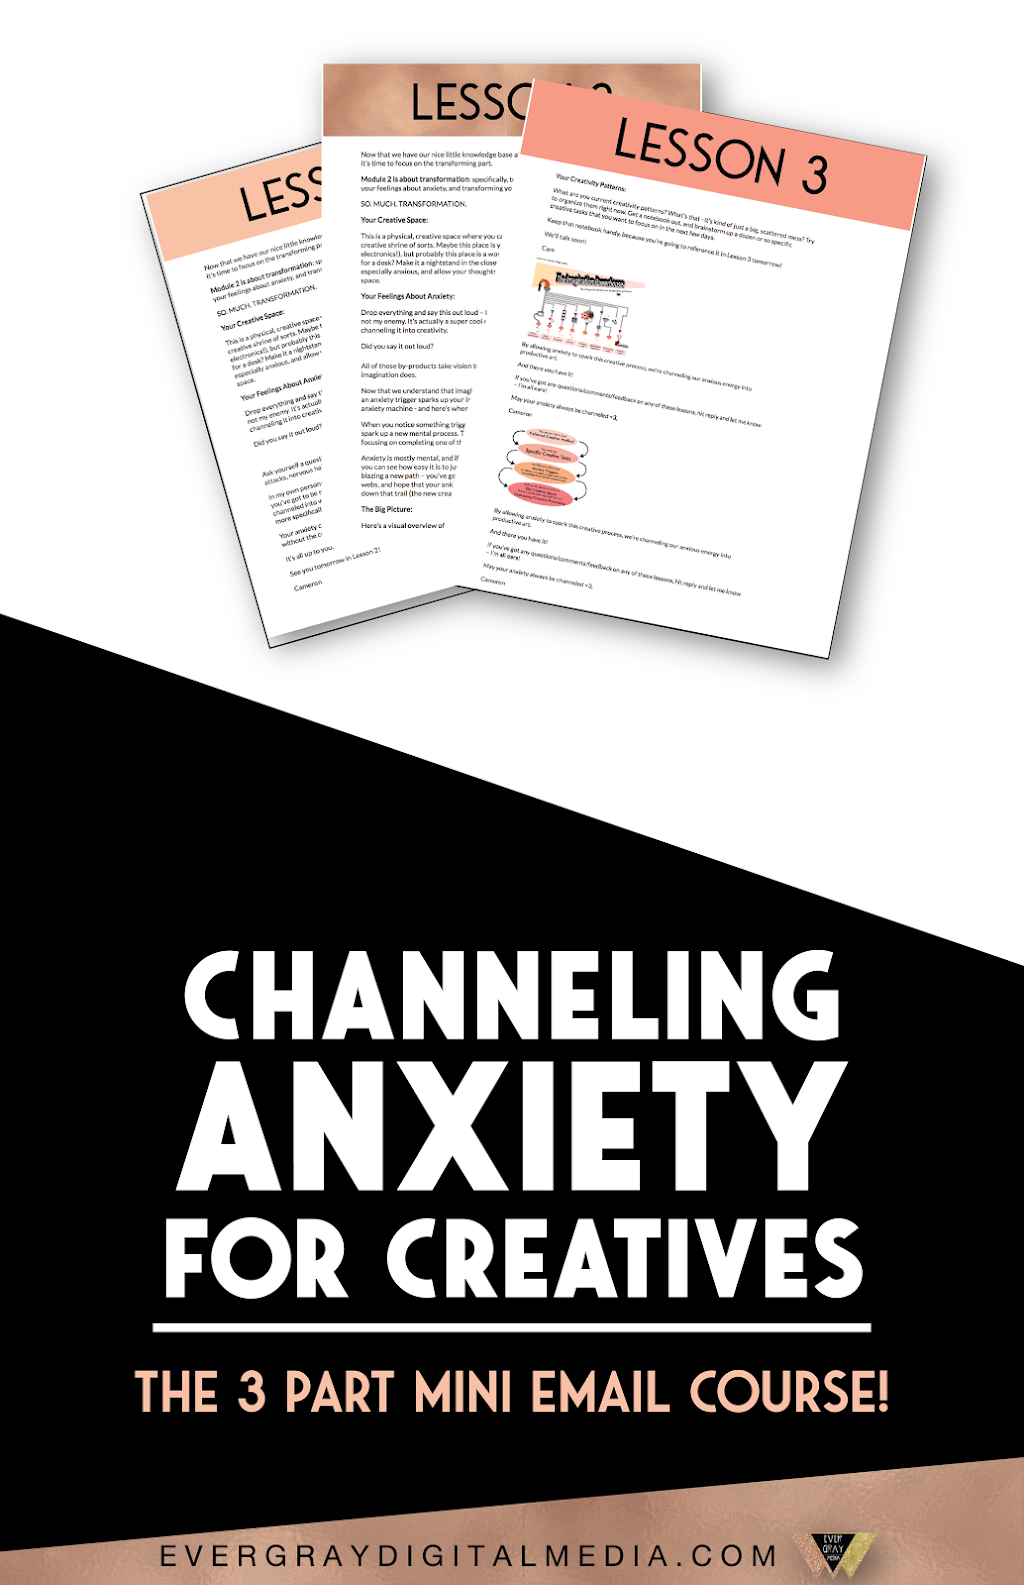 Do you want less anxiety and more creativity? There's an unconventional, innovative new way to not just manage your anxiety, but to harness it - the Channeling Anxiety for Creatives 3-Part Mini Email Course! Evergray Media